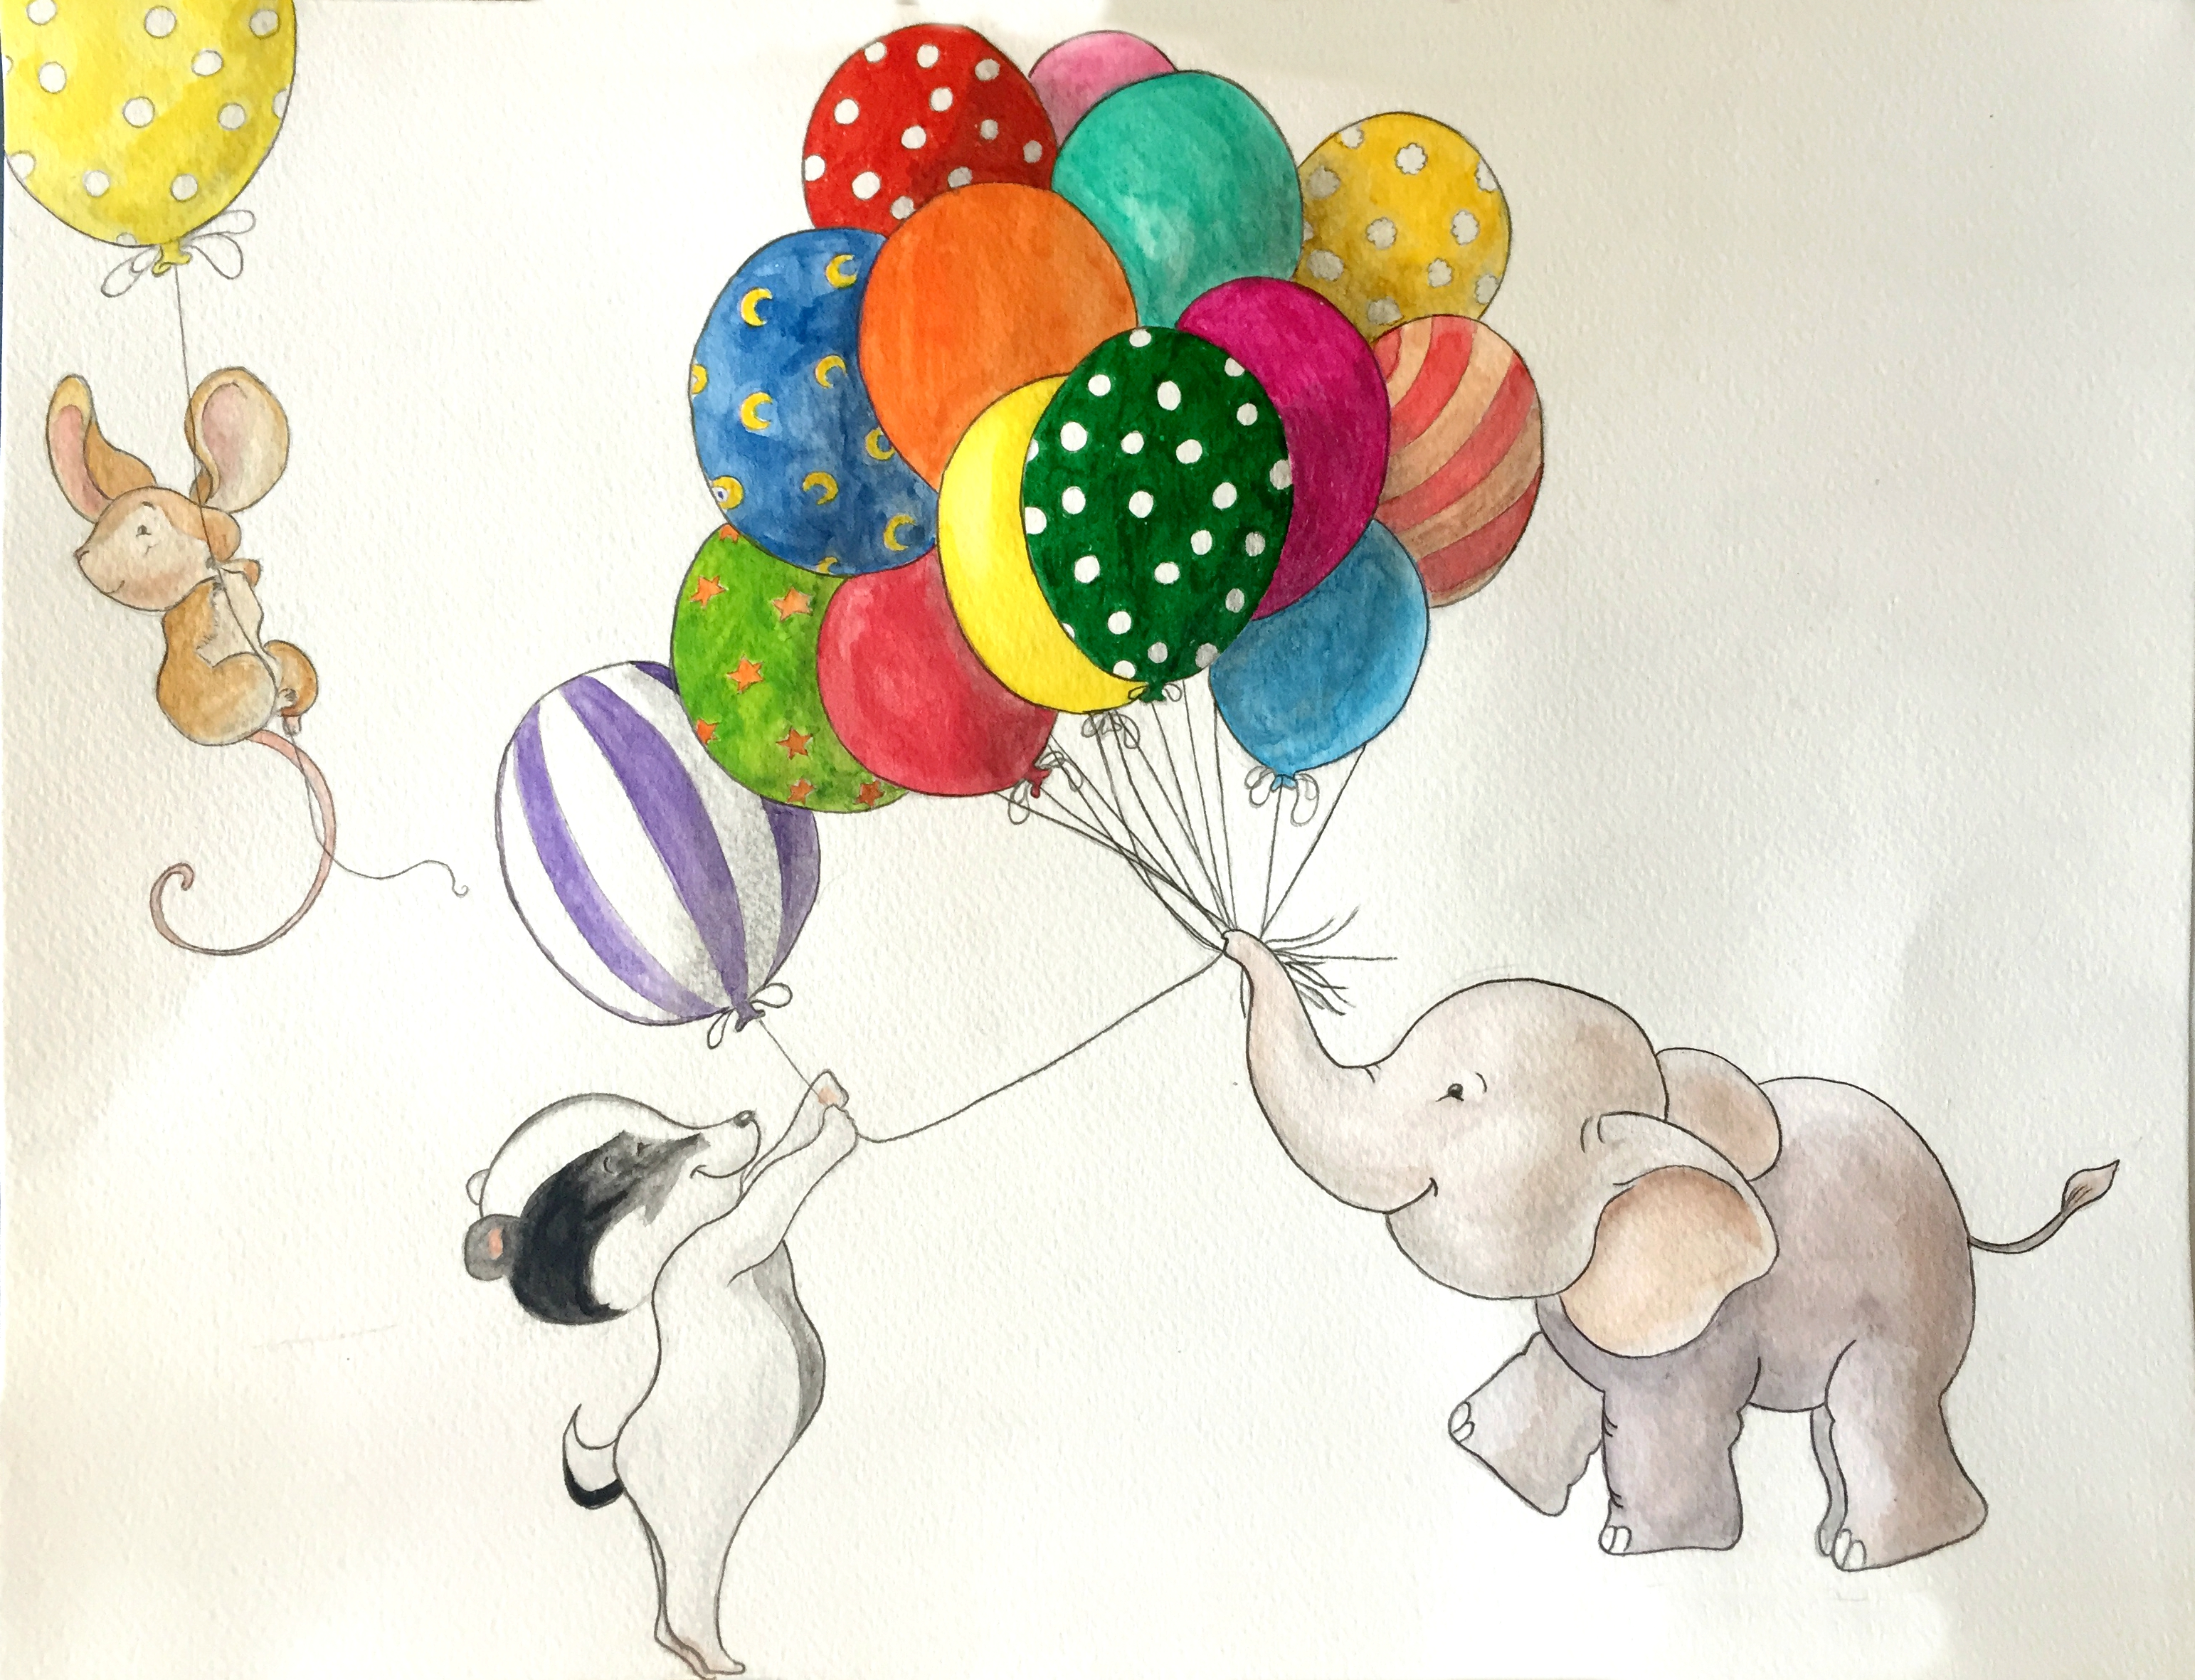 Animaux et ballons